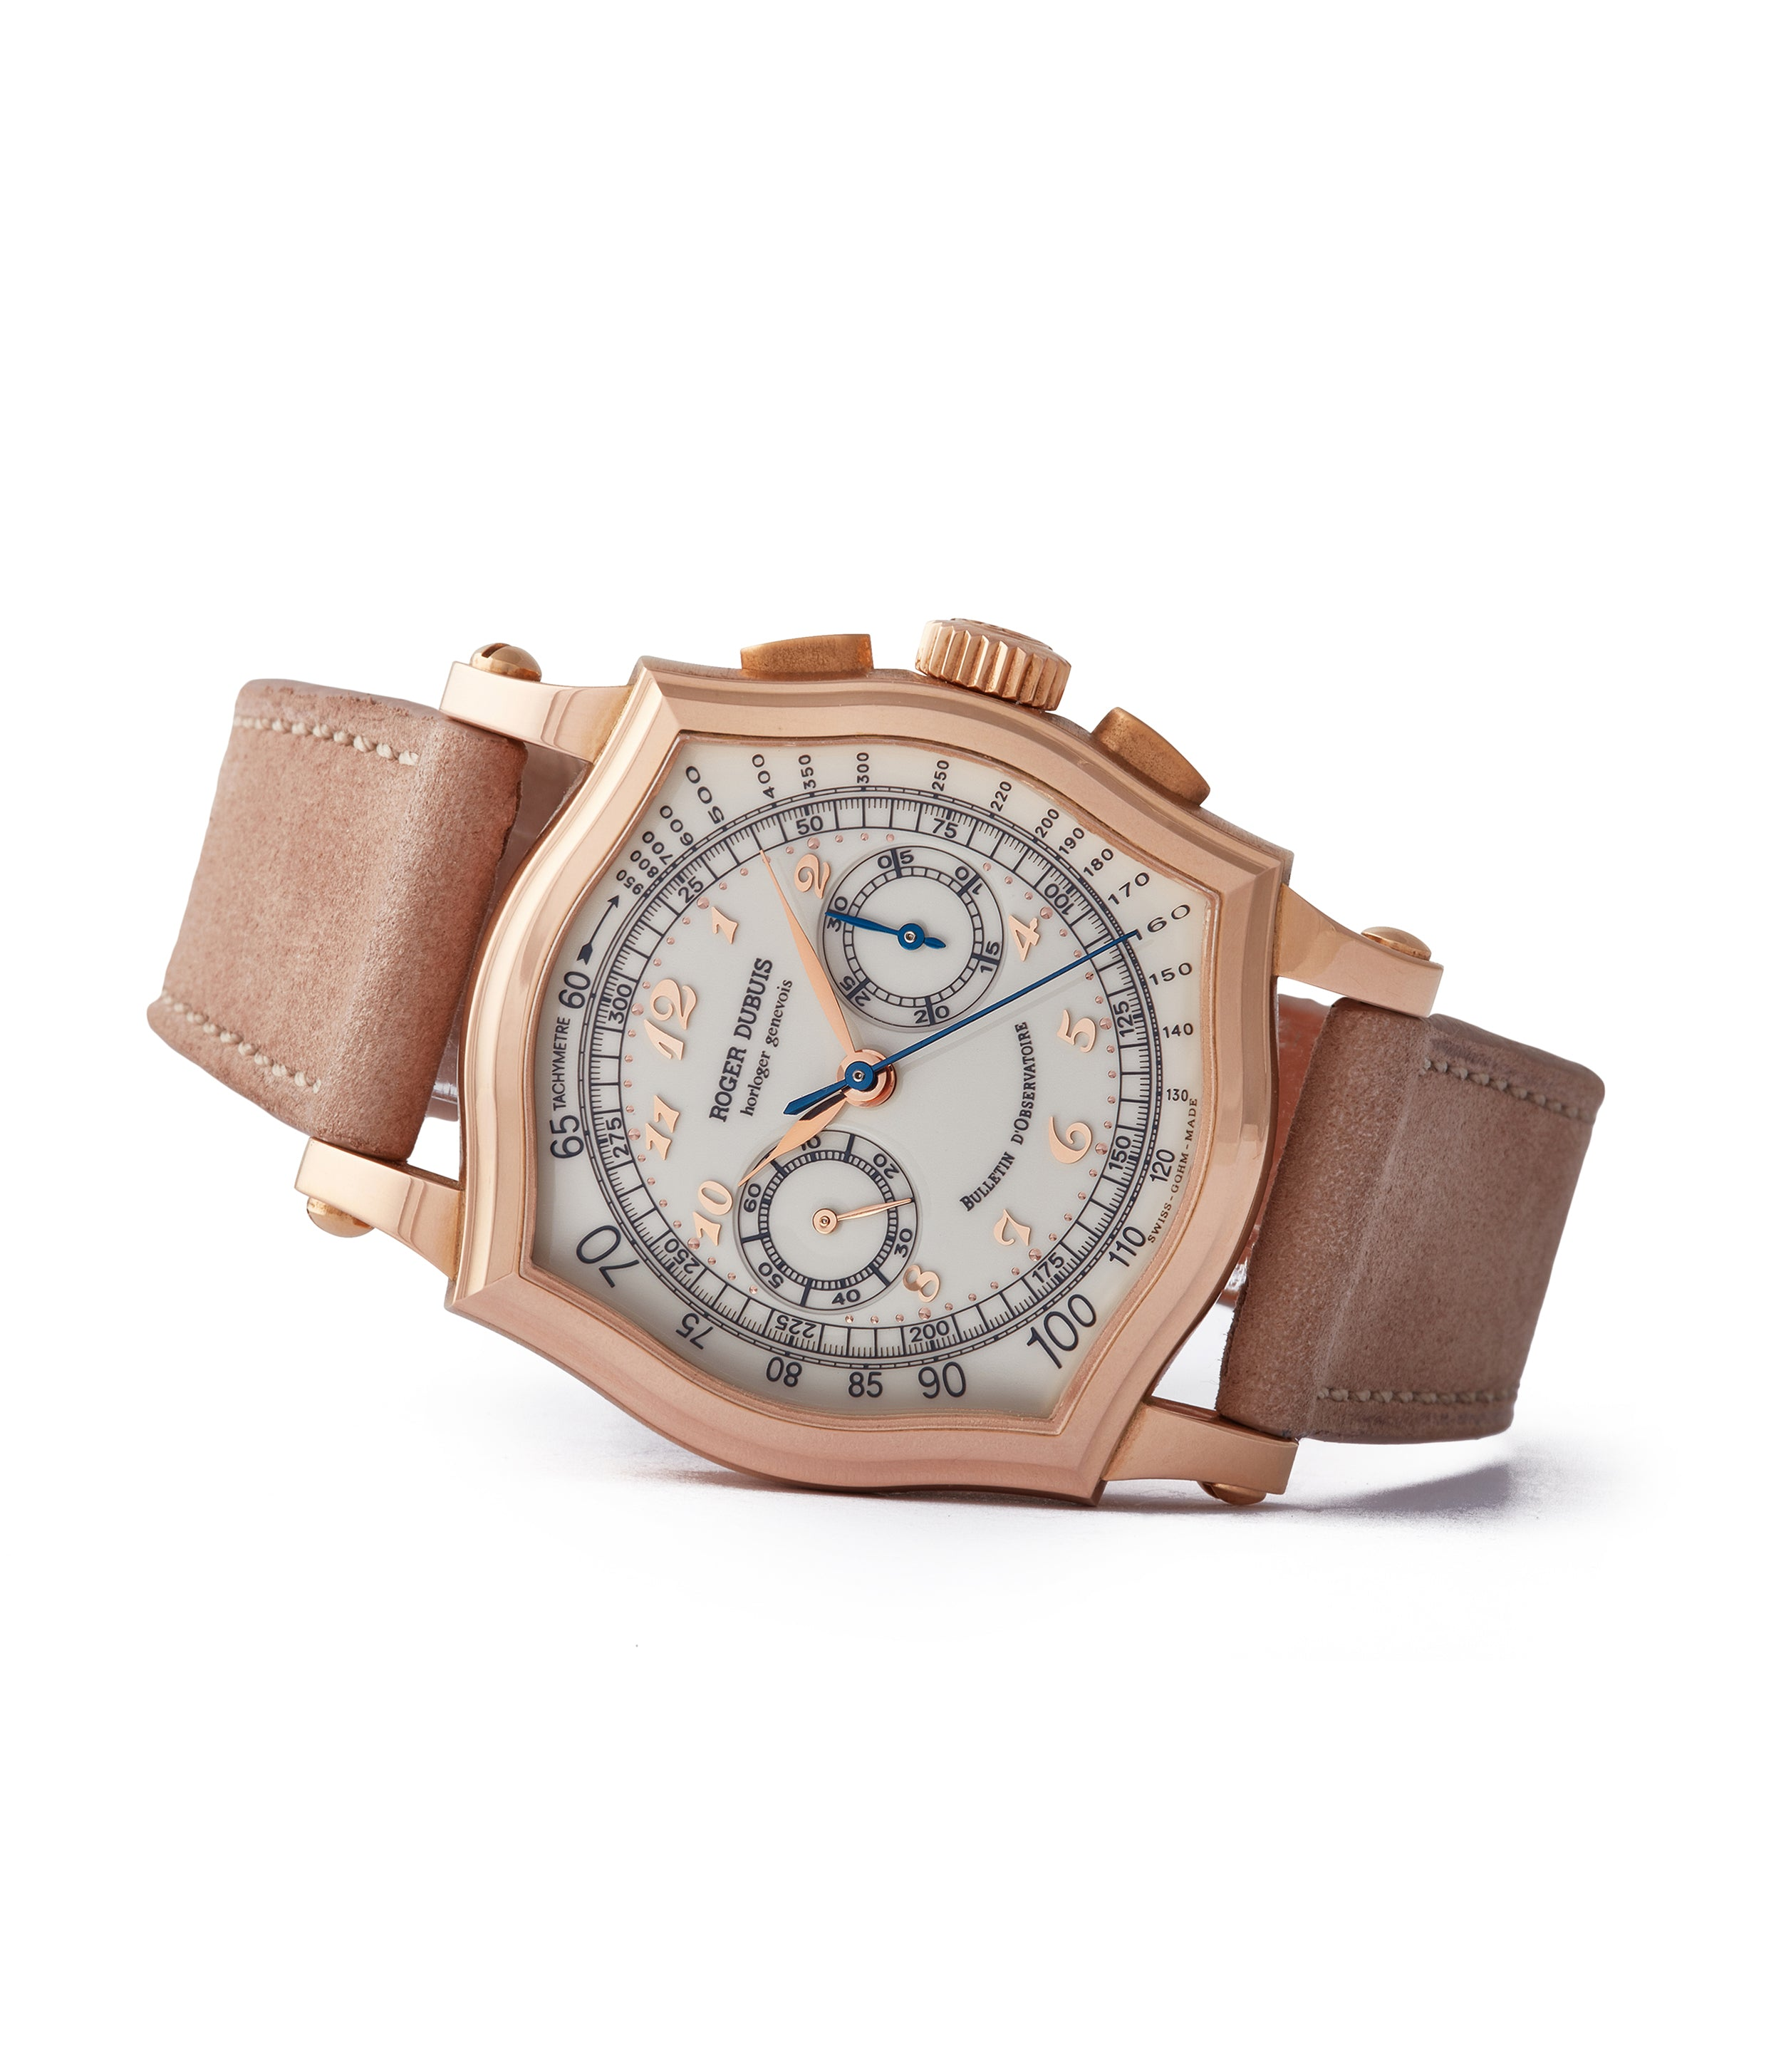 side-shot independent watchmaker Roger Dubuis Sympathie Chronograph S37 56 0 rose gold dress watch for sale online at A Collected Man London UK specialist of collectable watches